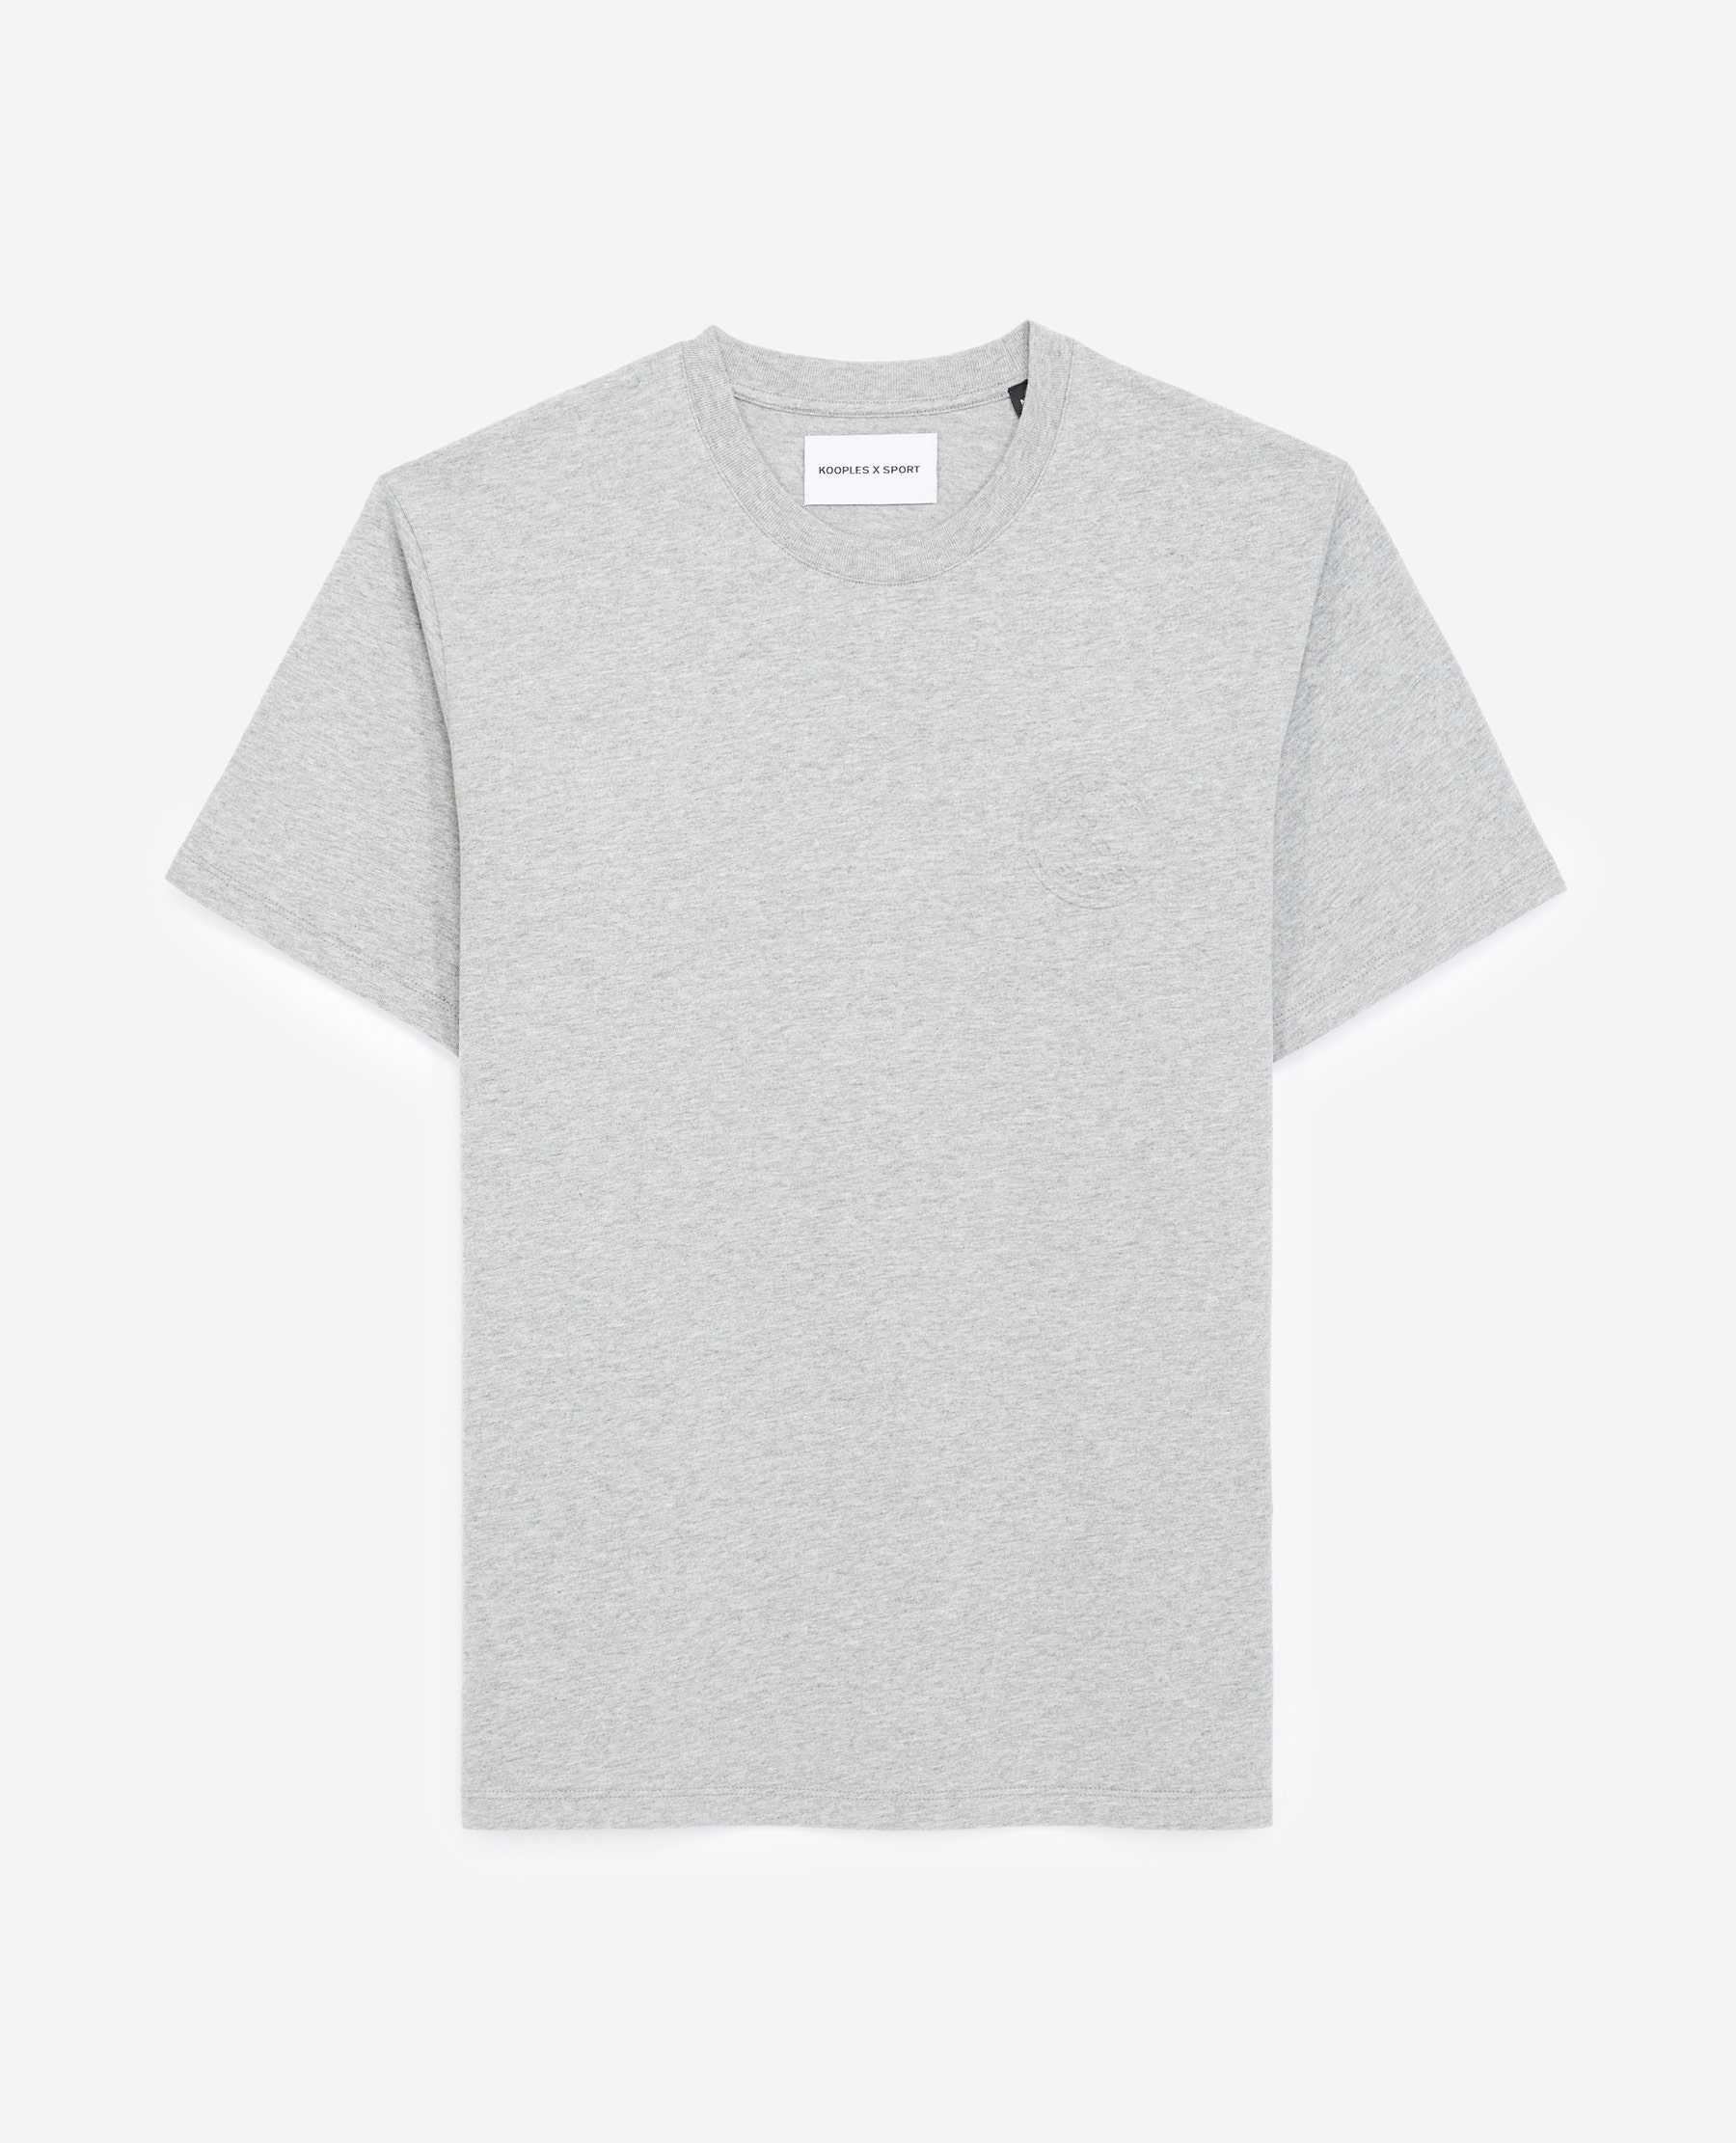 T-shirt coton logo embossé - The Kooples - Modalova